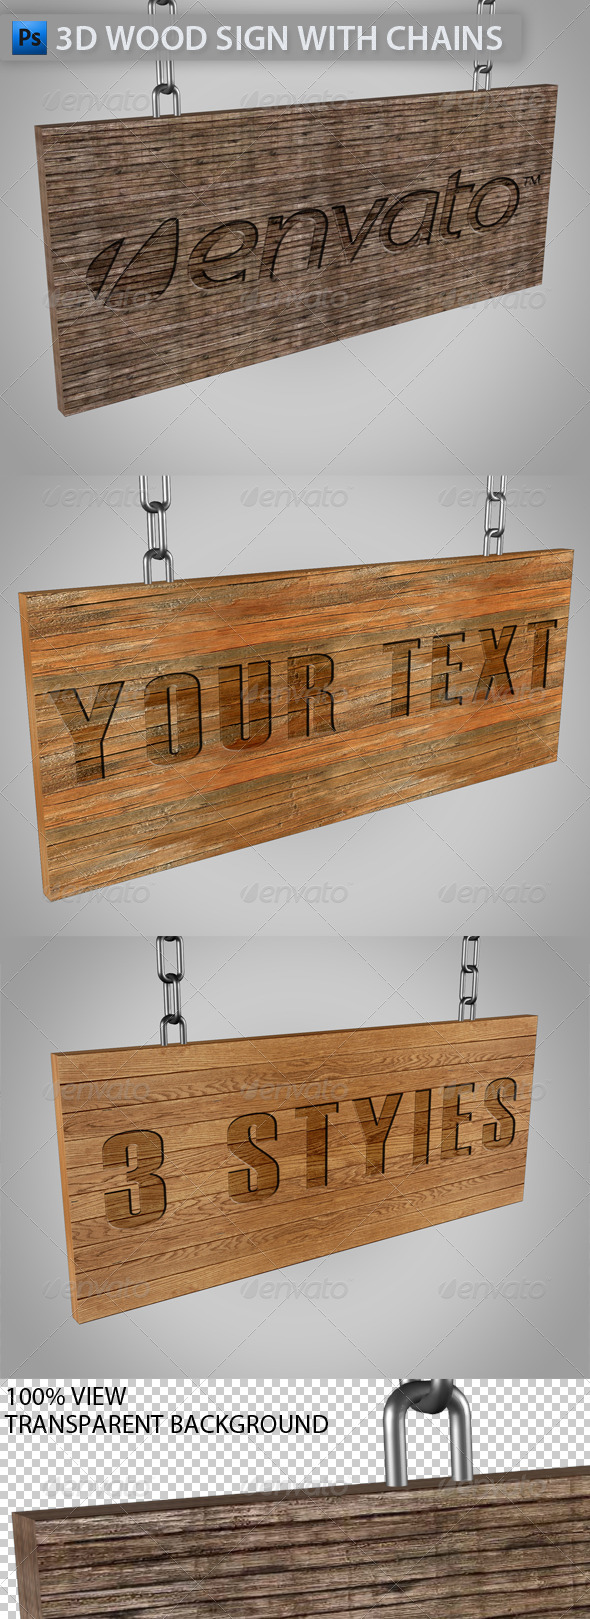 3D Wood Sign with Chains